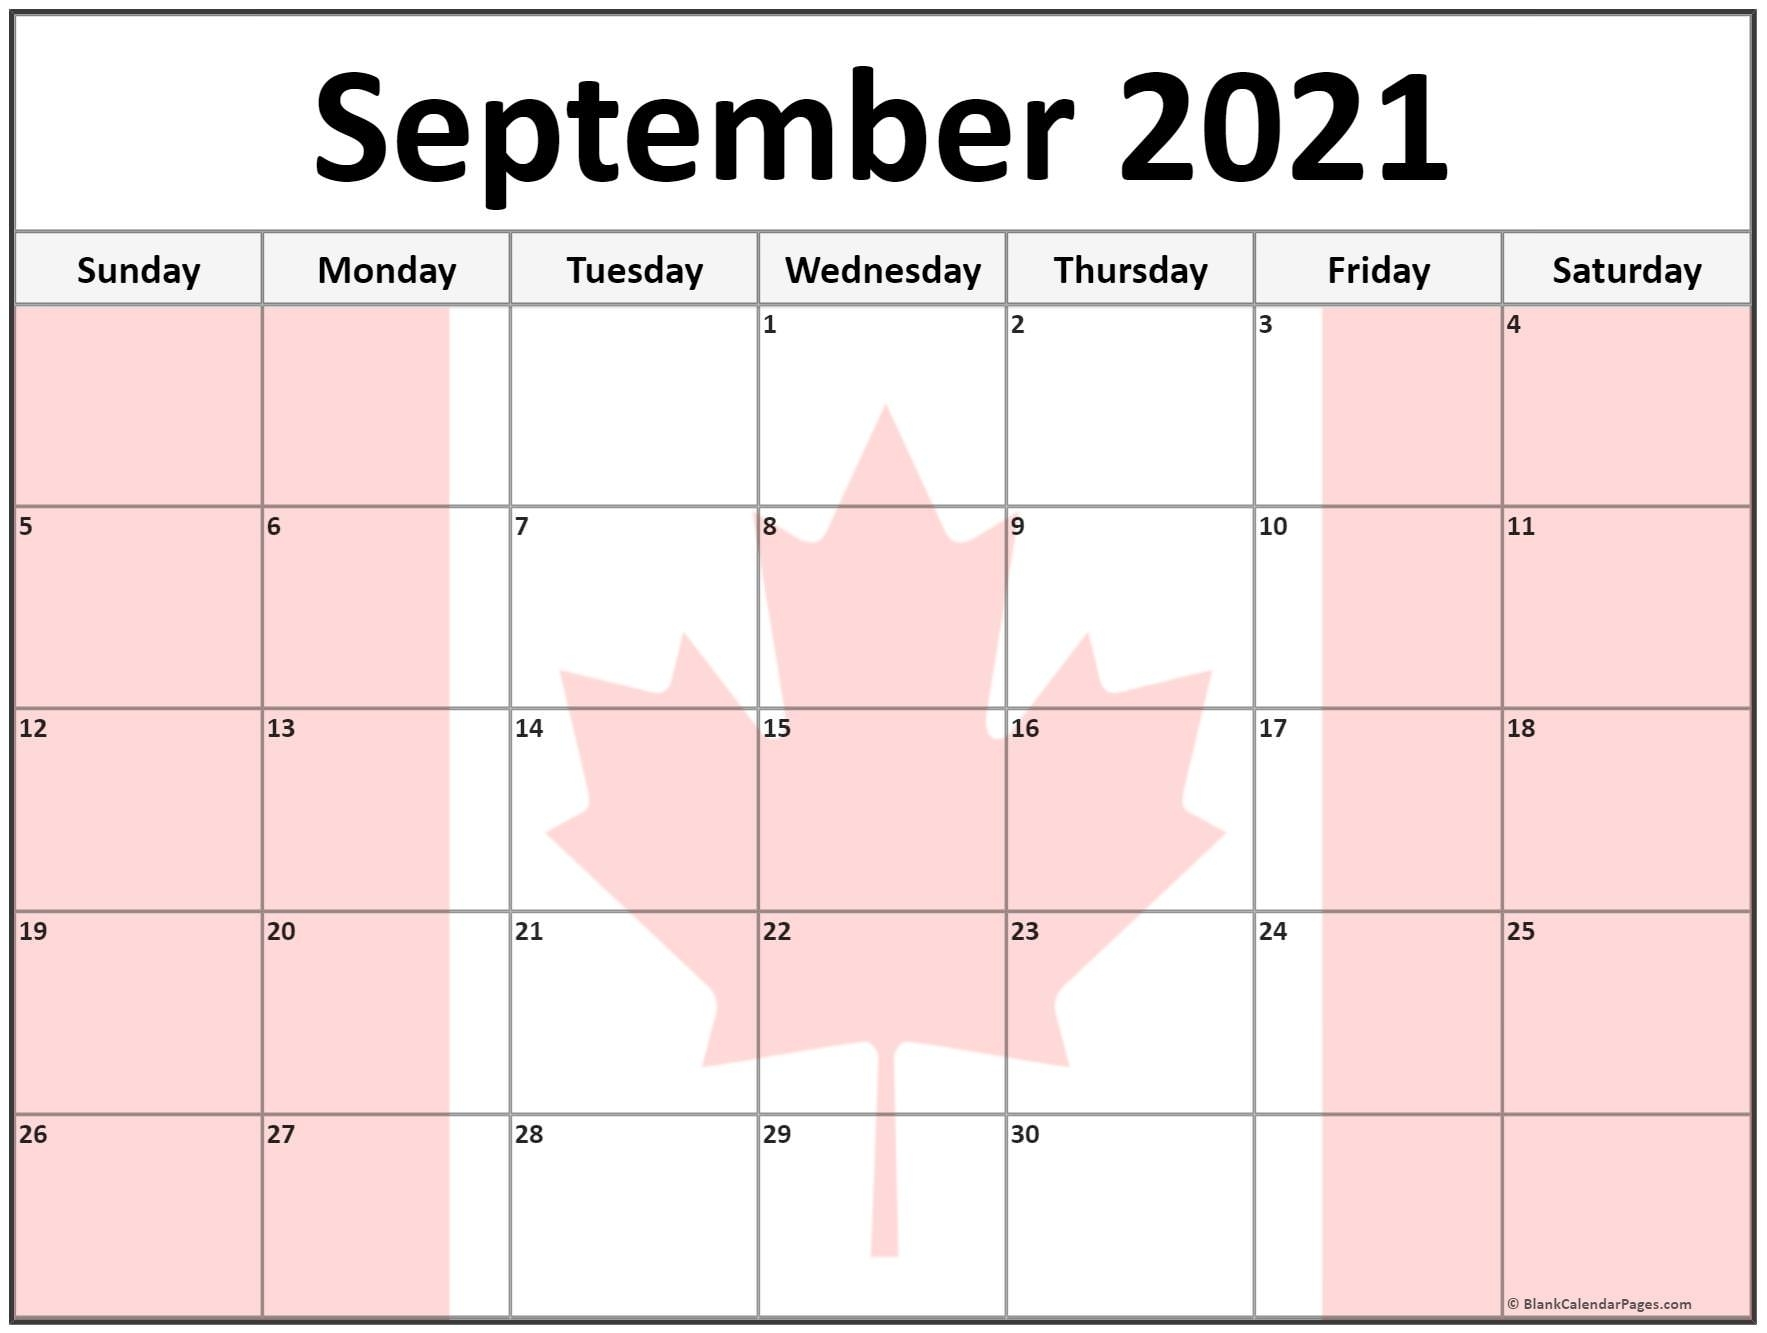 Collection Of September 2021 Photo Calendars With Image Filters. September 2021 Calendar Image